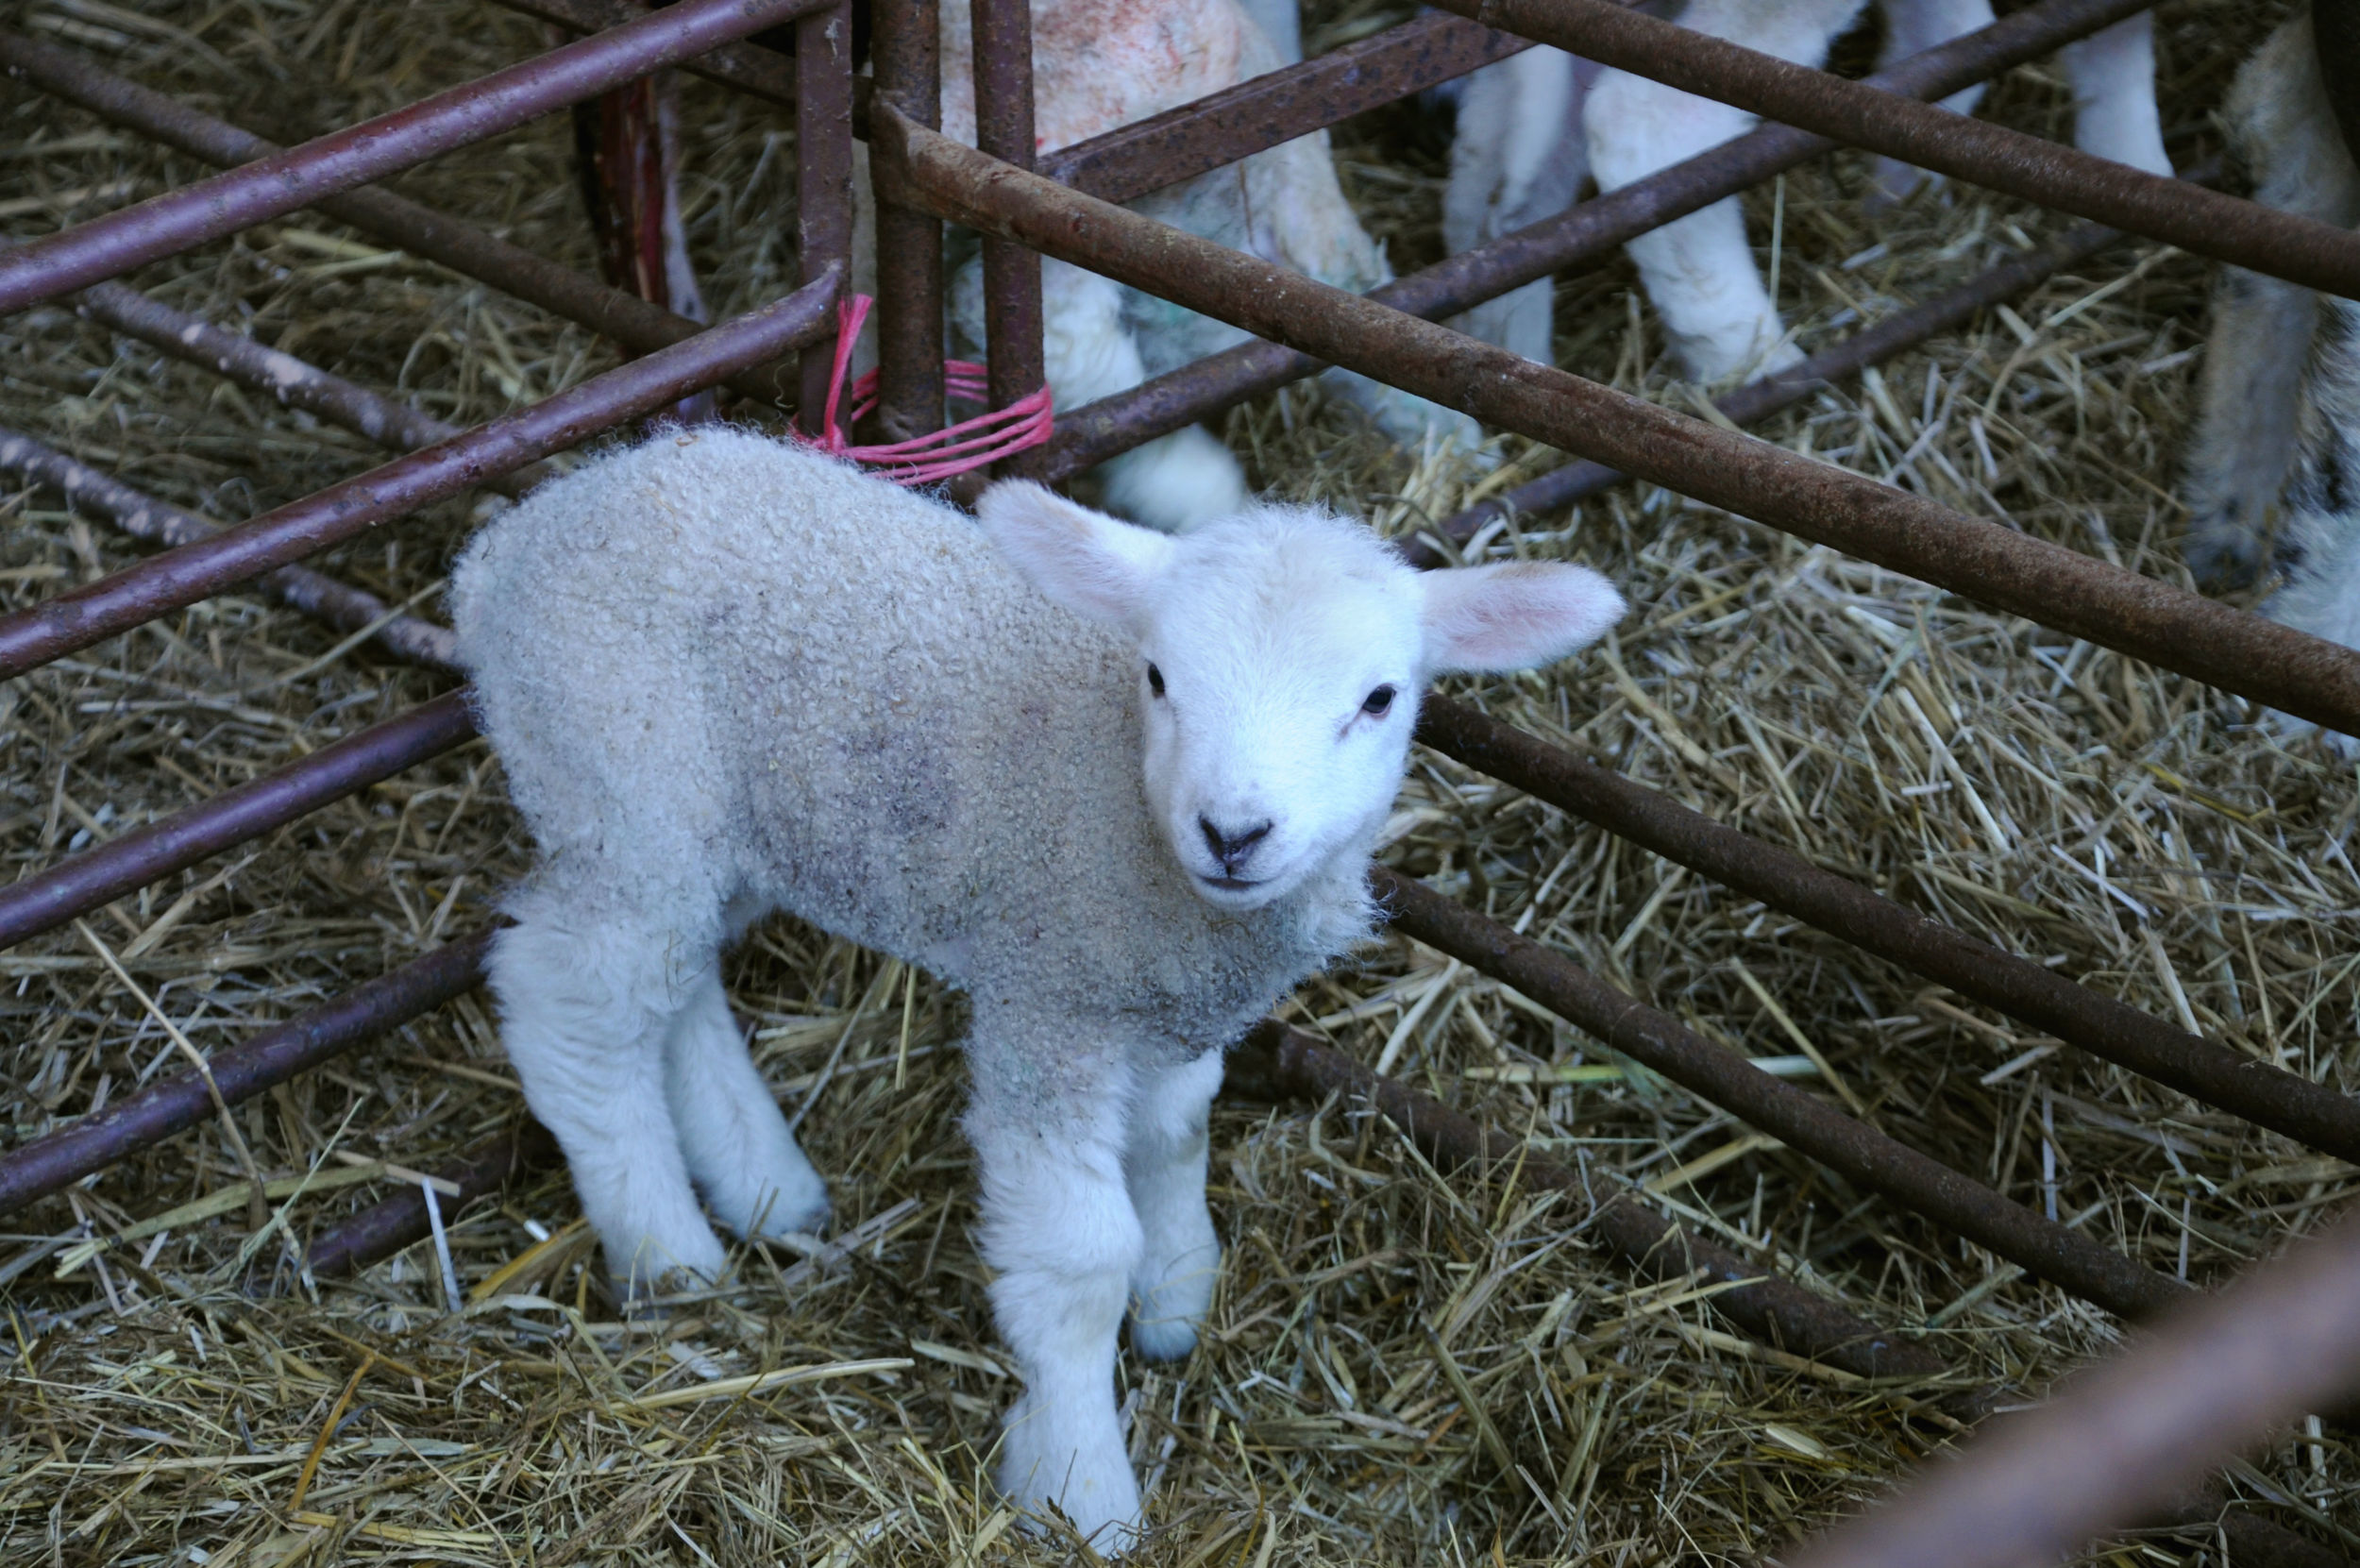 Lamb, just a few hours old